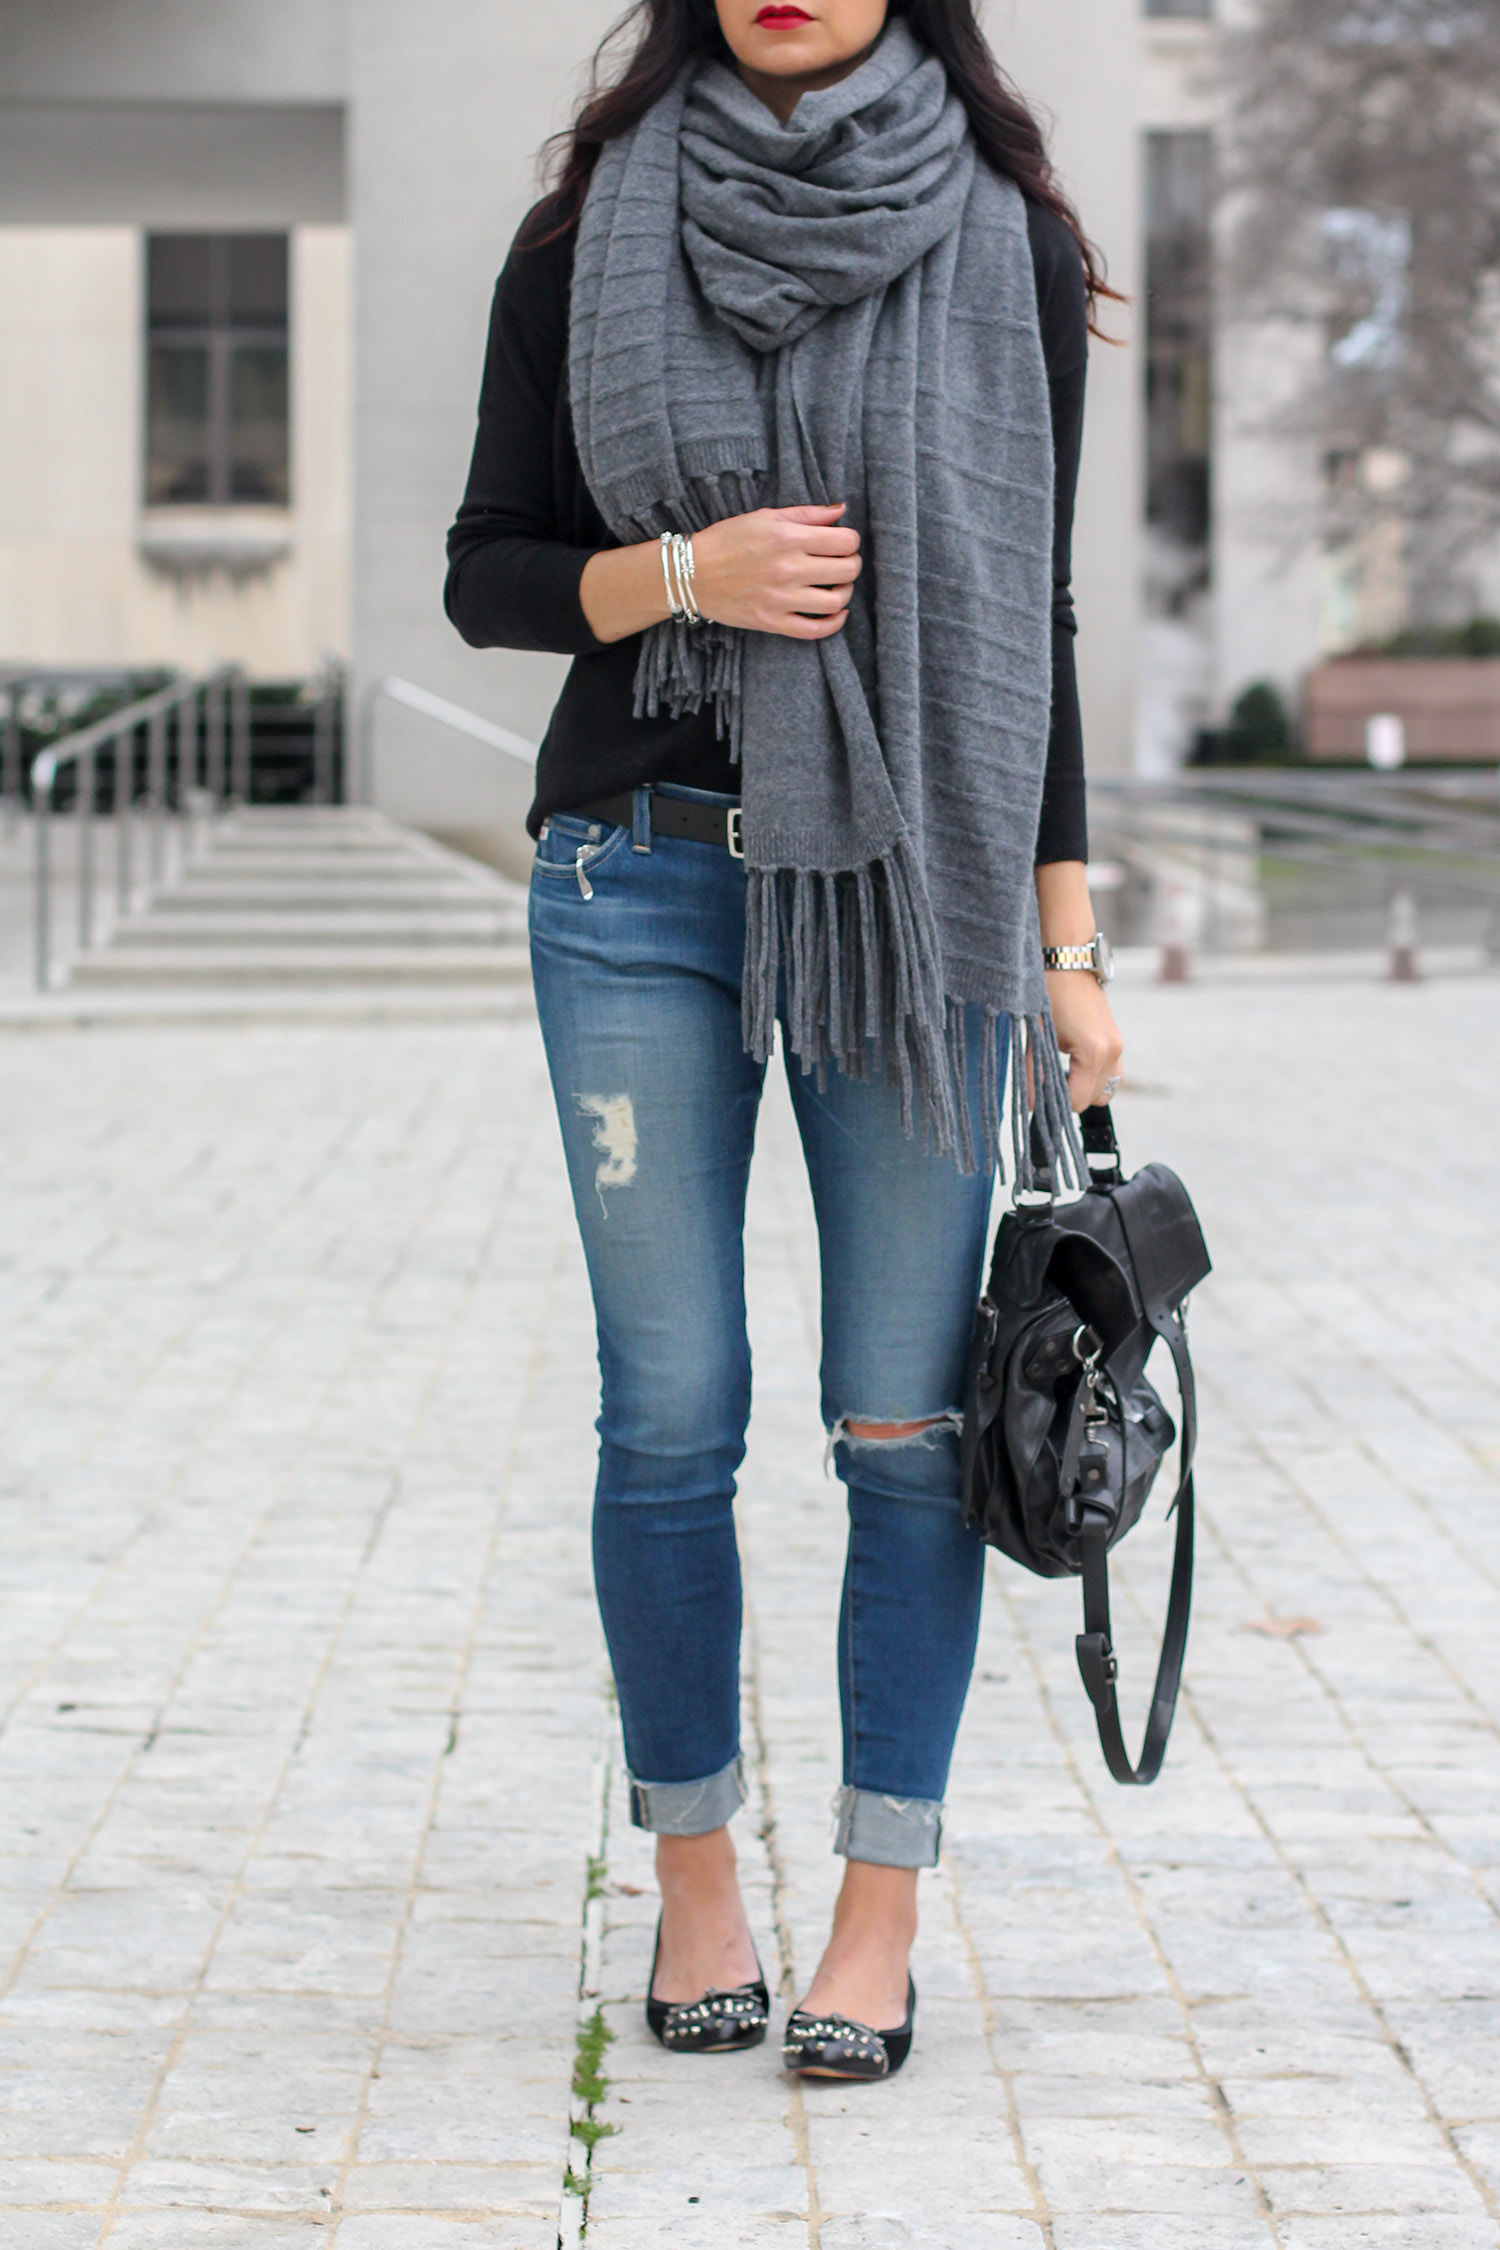 How to Style an Oversized Cashmere Scarf